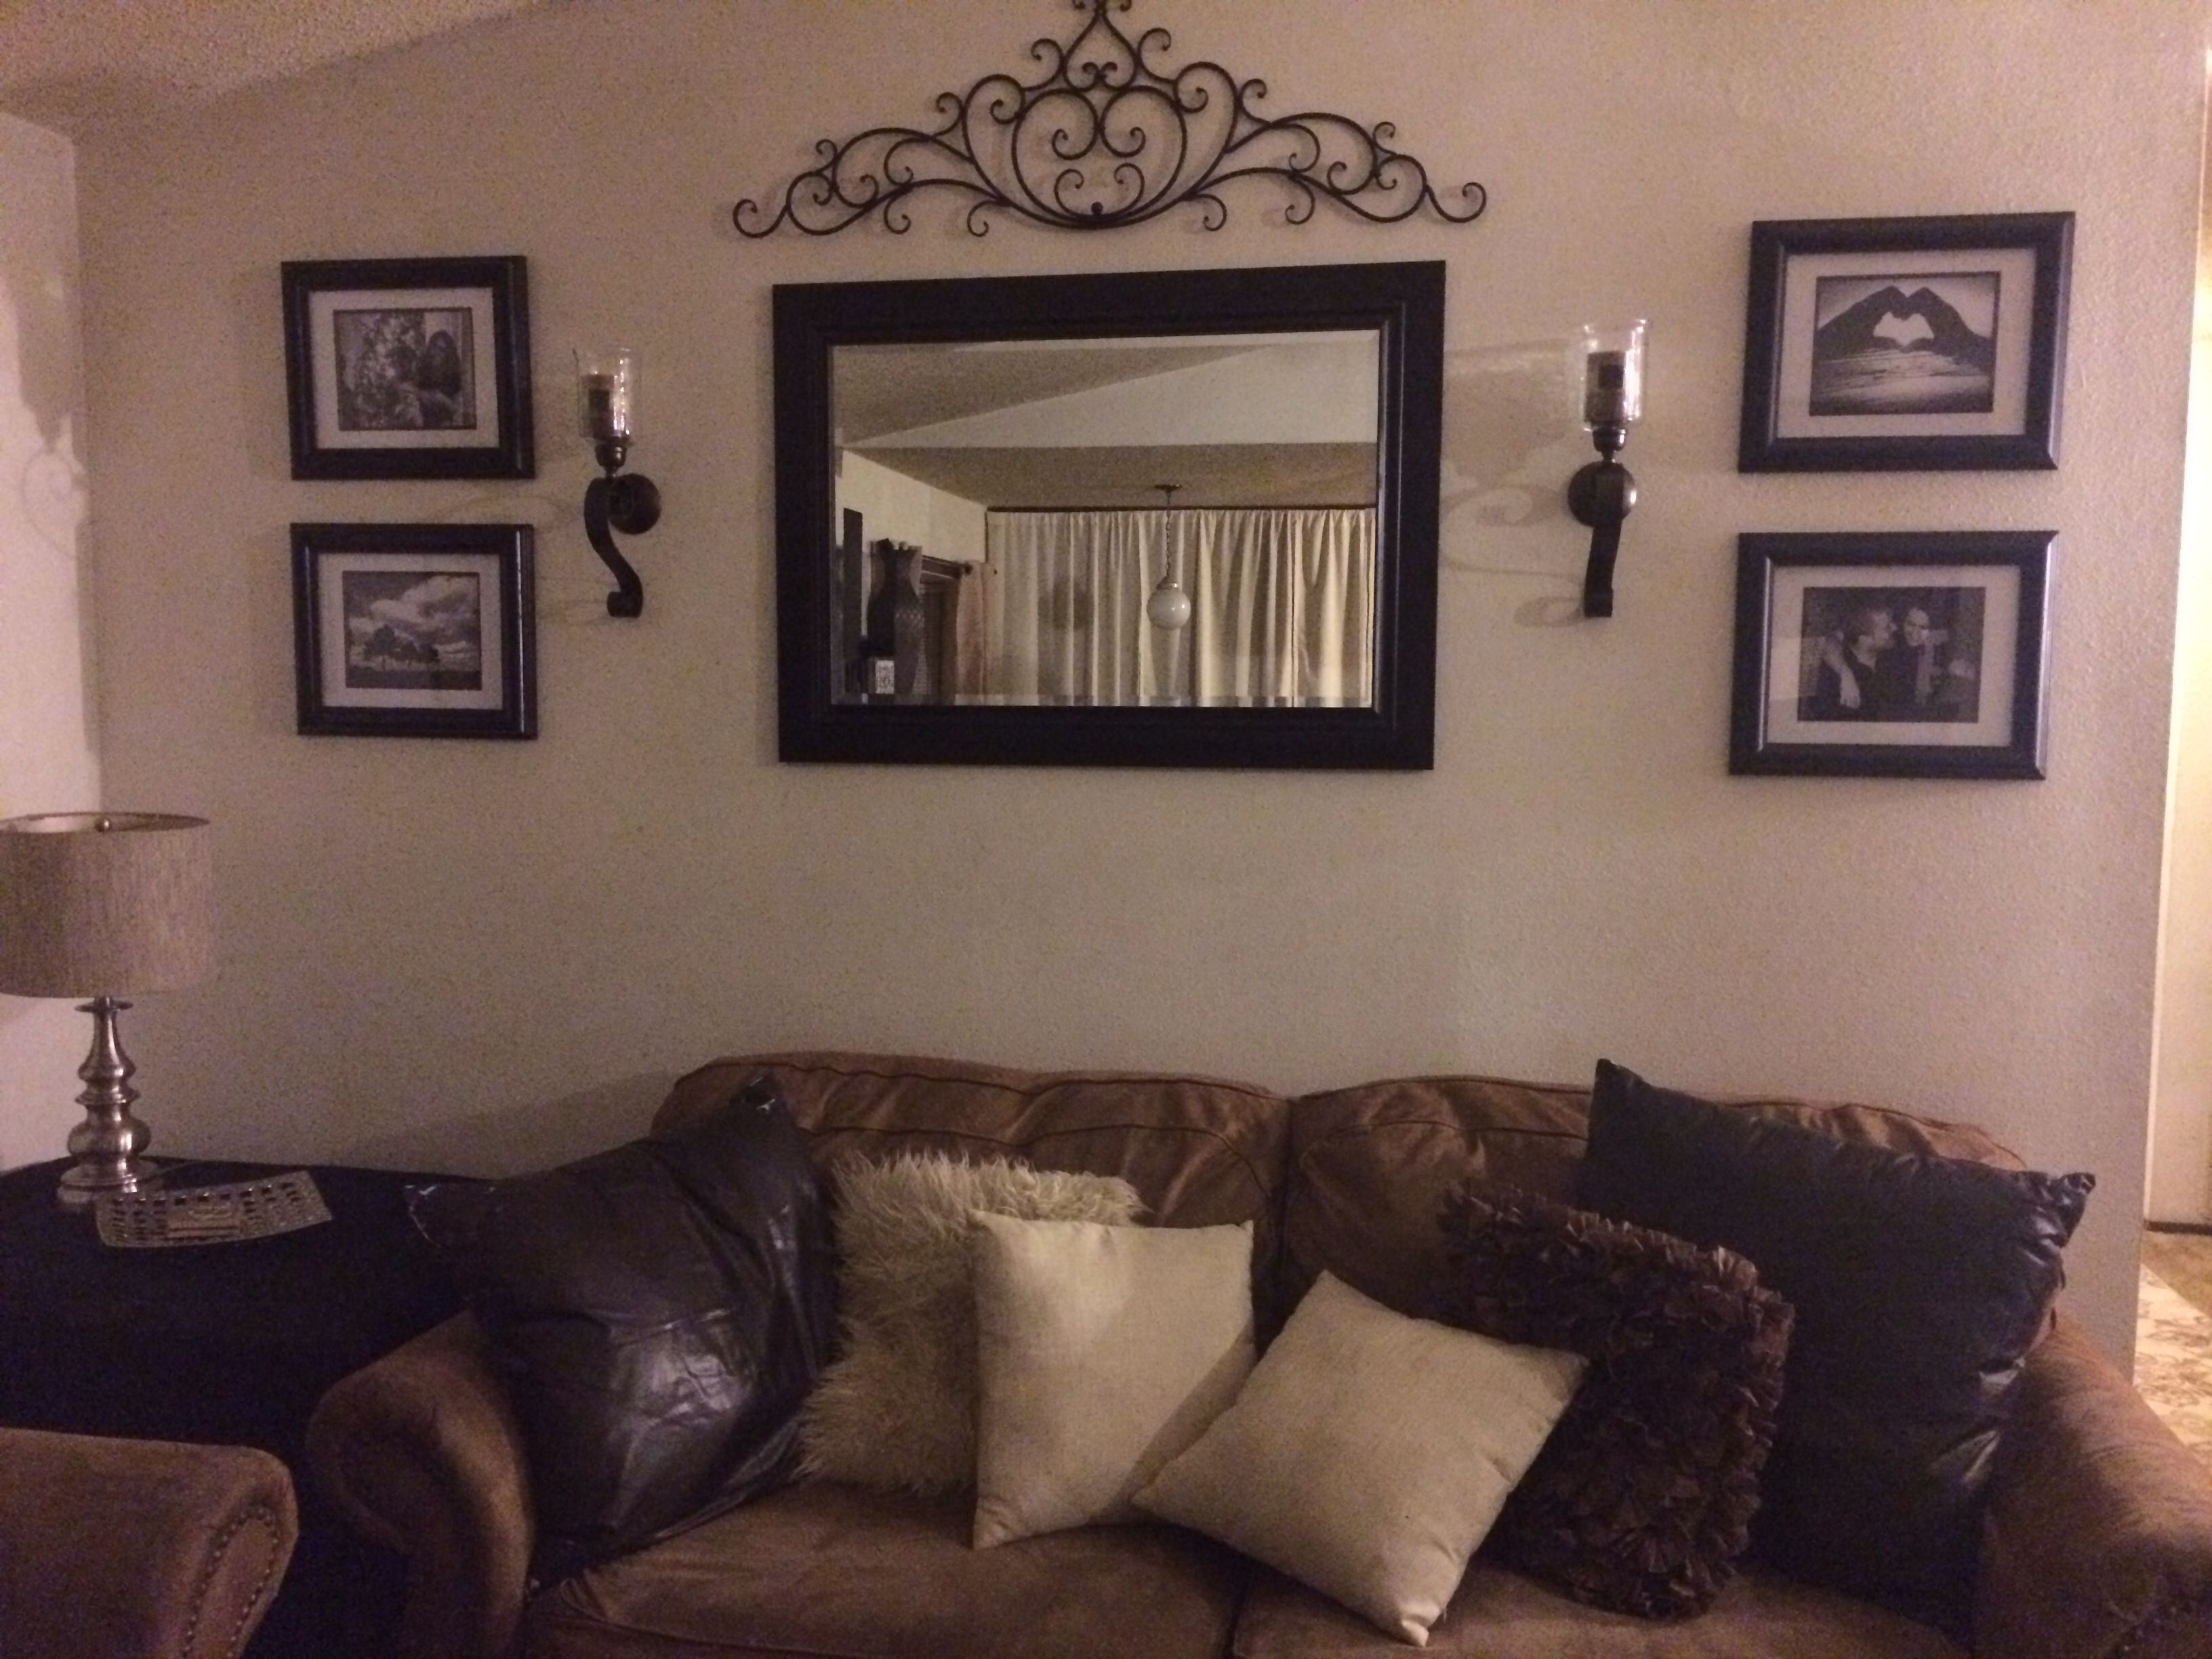 Behind Couch Wall In Living Room Mirror, Frame, Sconces, And Metal With Best And Newest Wall Accents Behind Tv Or Couch (View 2 of 15)